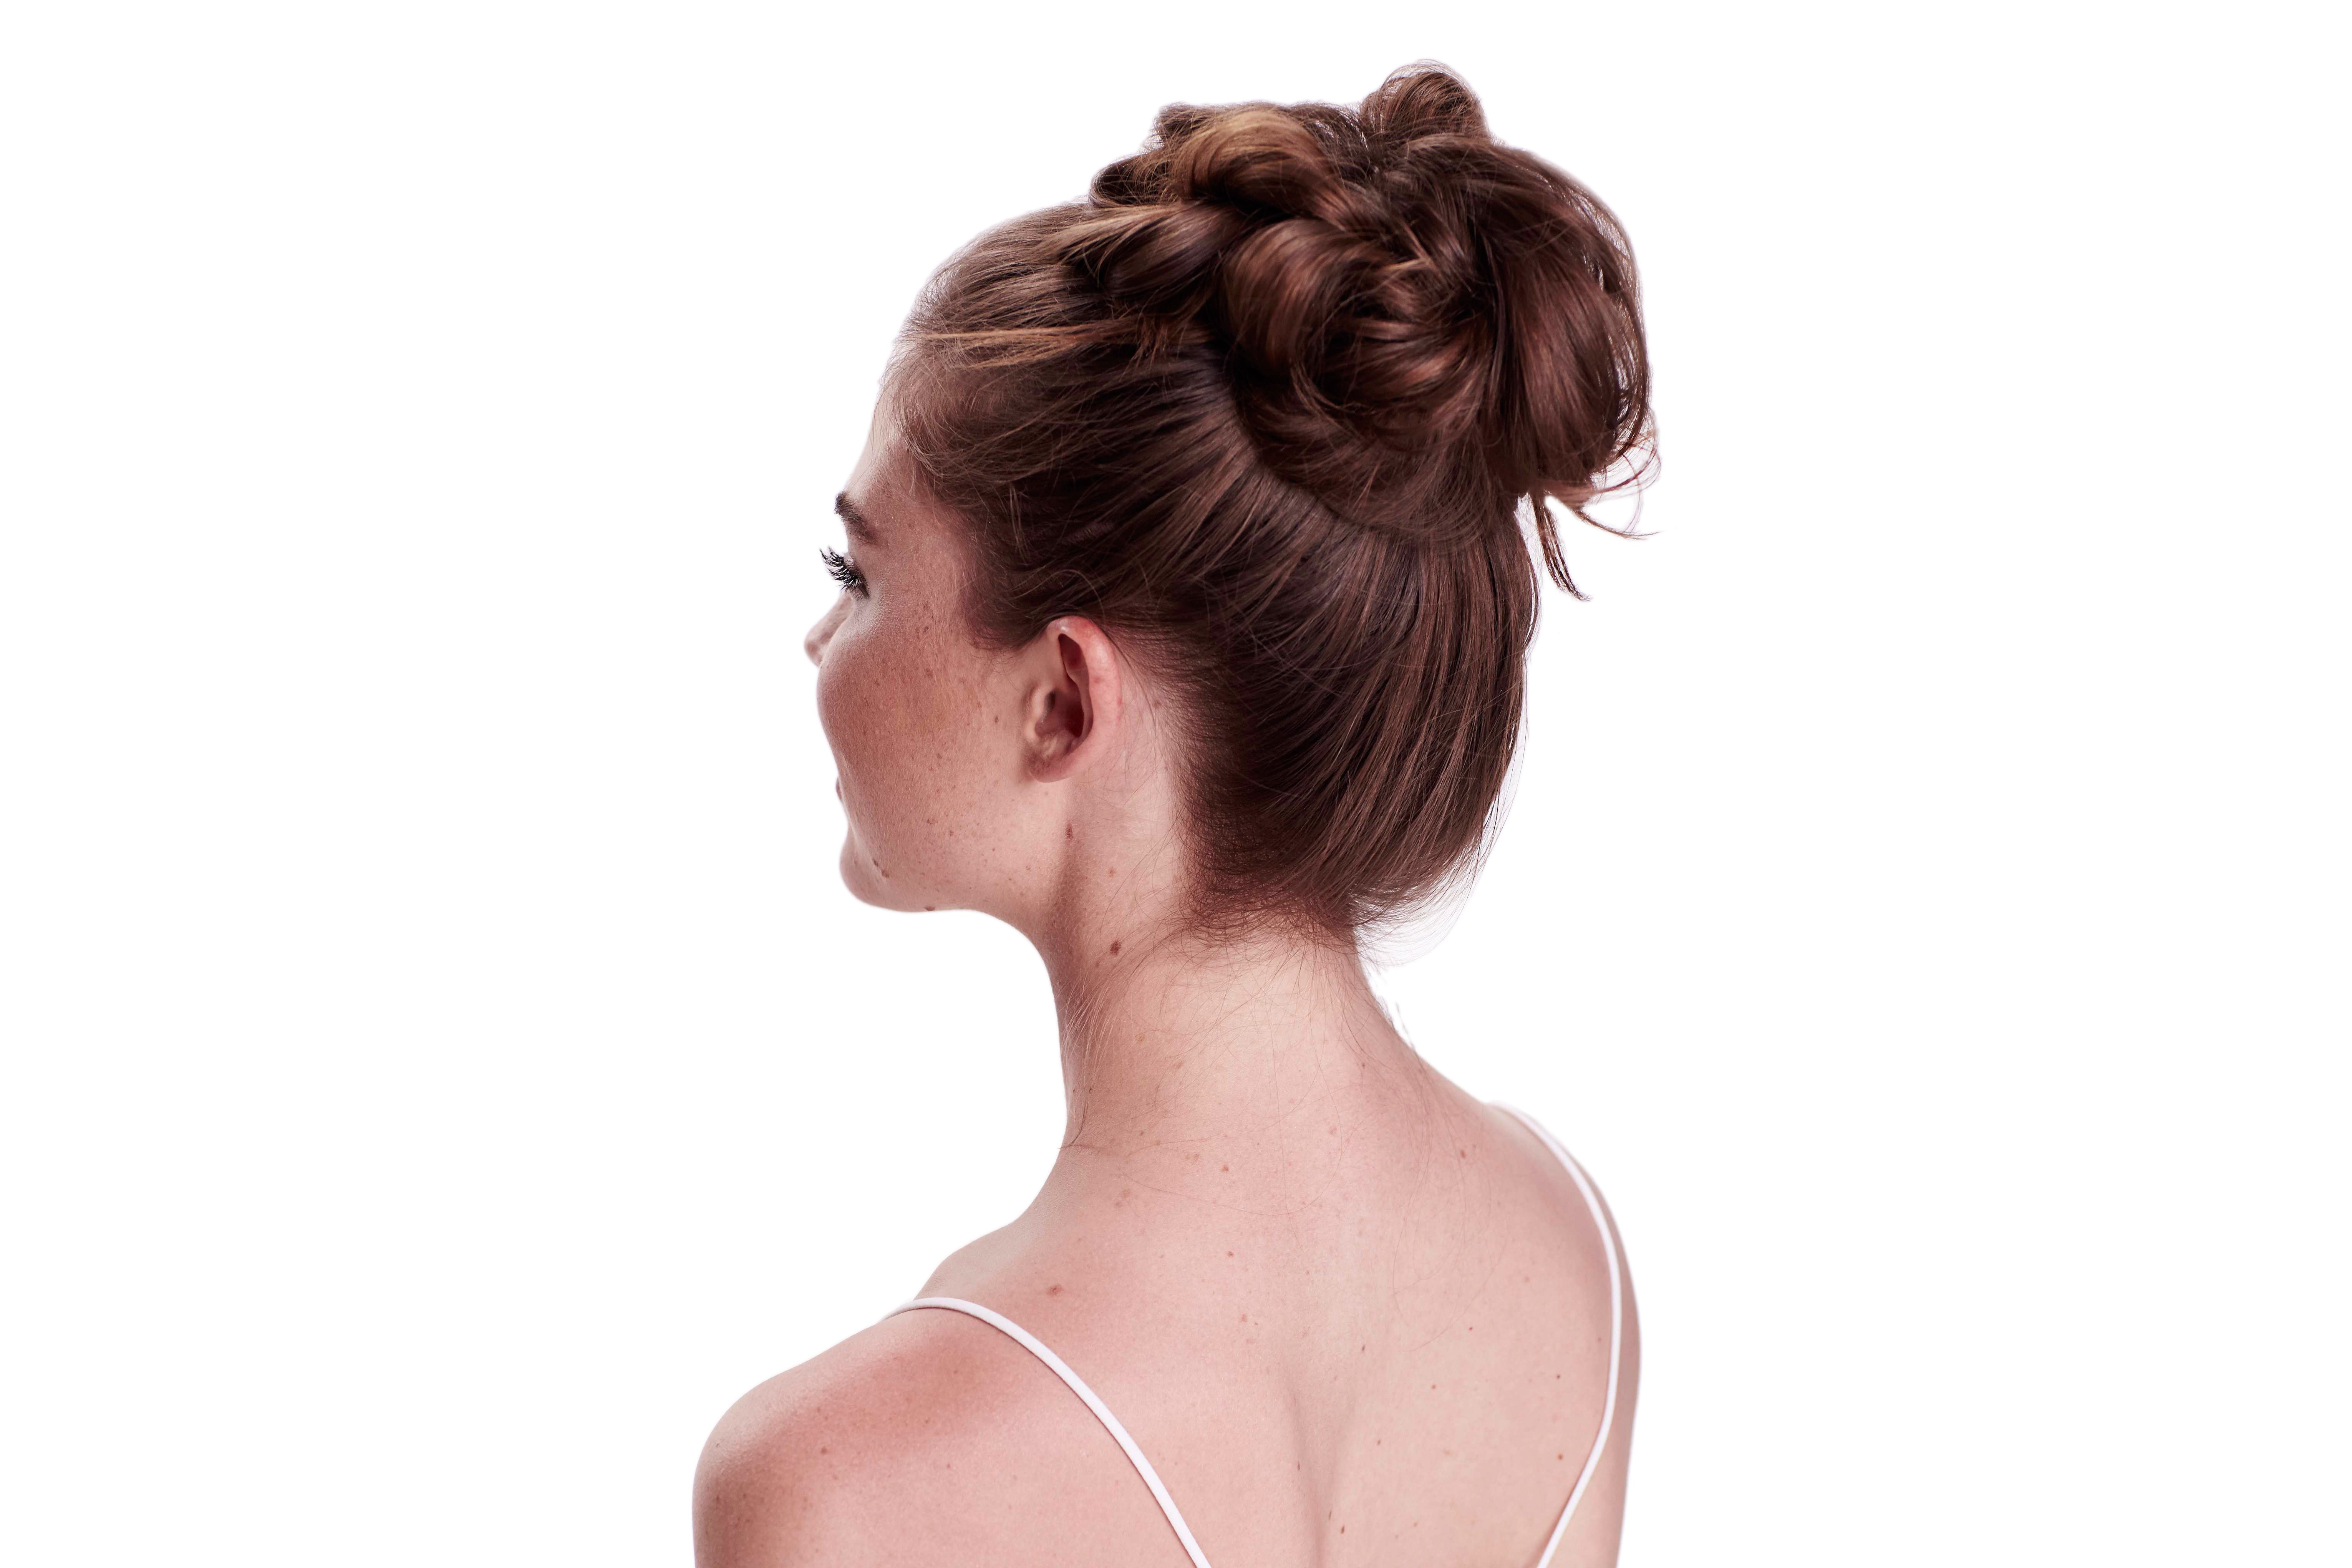 Best ideas about Invisibobble Hairstyles . Save or Pin 7 Easy Hairstyles You Can Create Using Invisibobble Now.